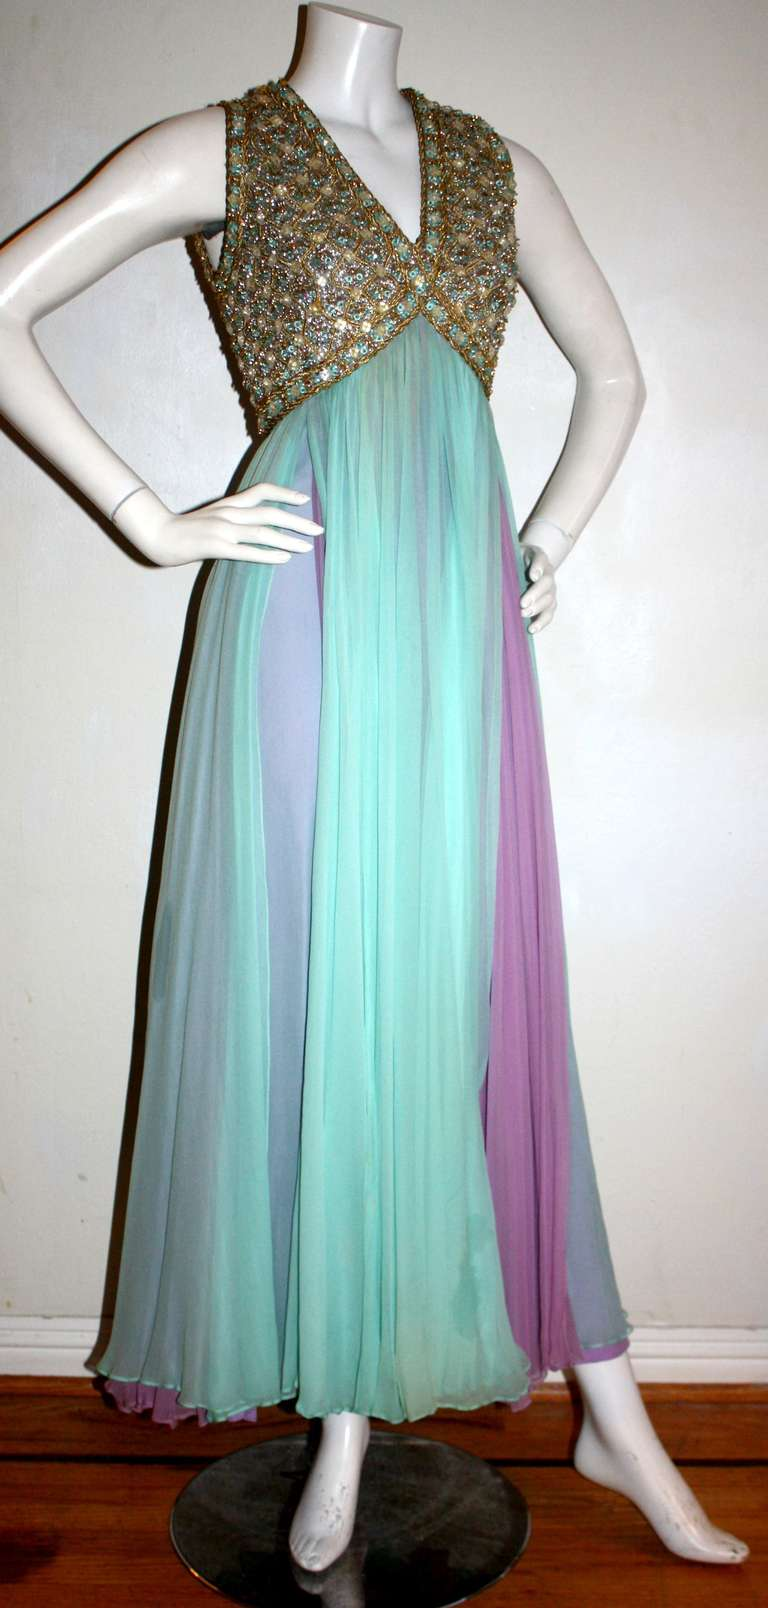 Stunning Vintage Greek Grecian Goddess Heavily Jeweled Chiffon Gown 4